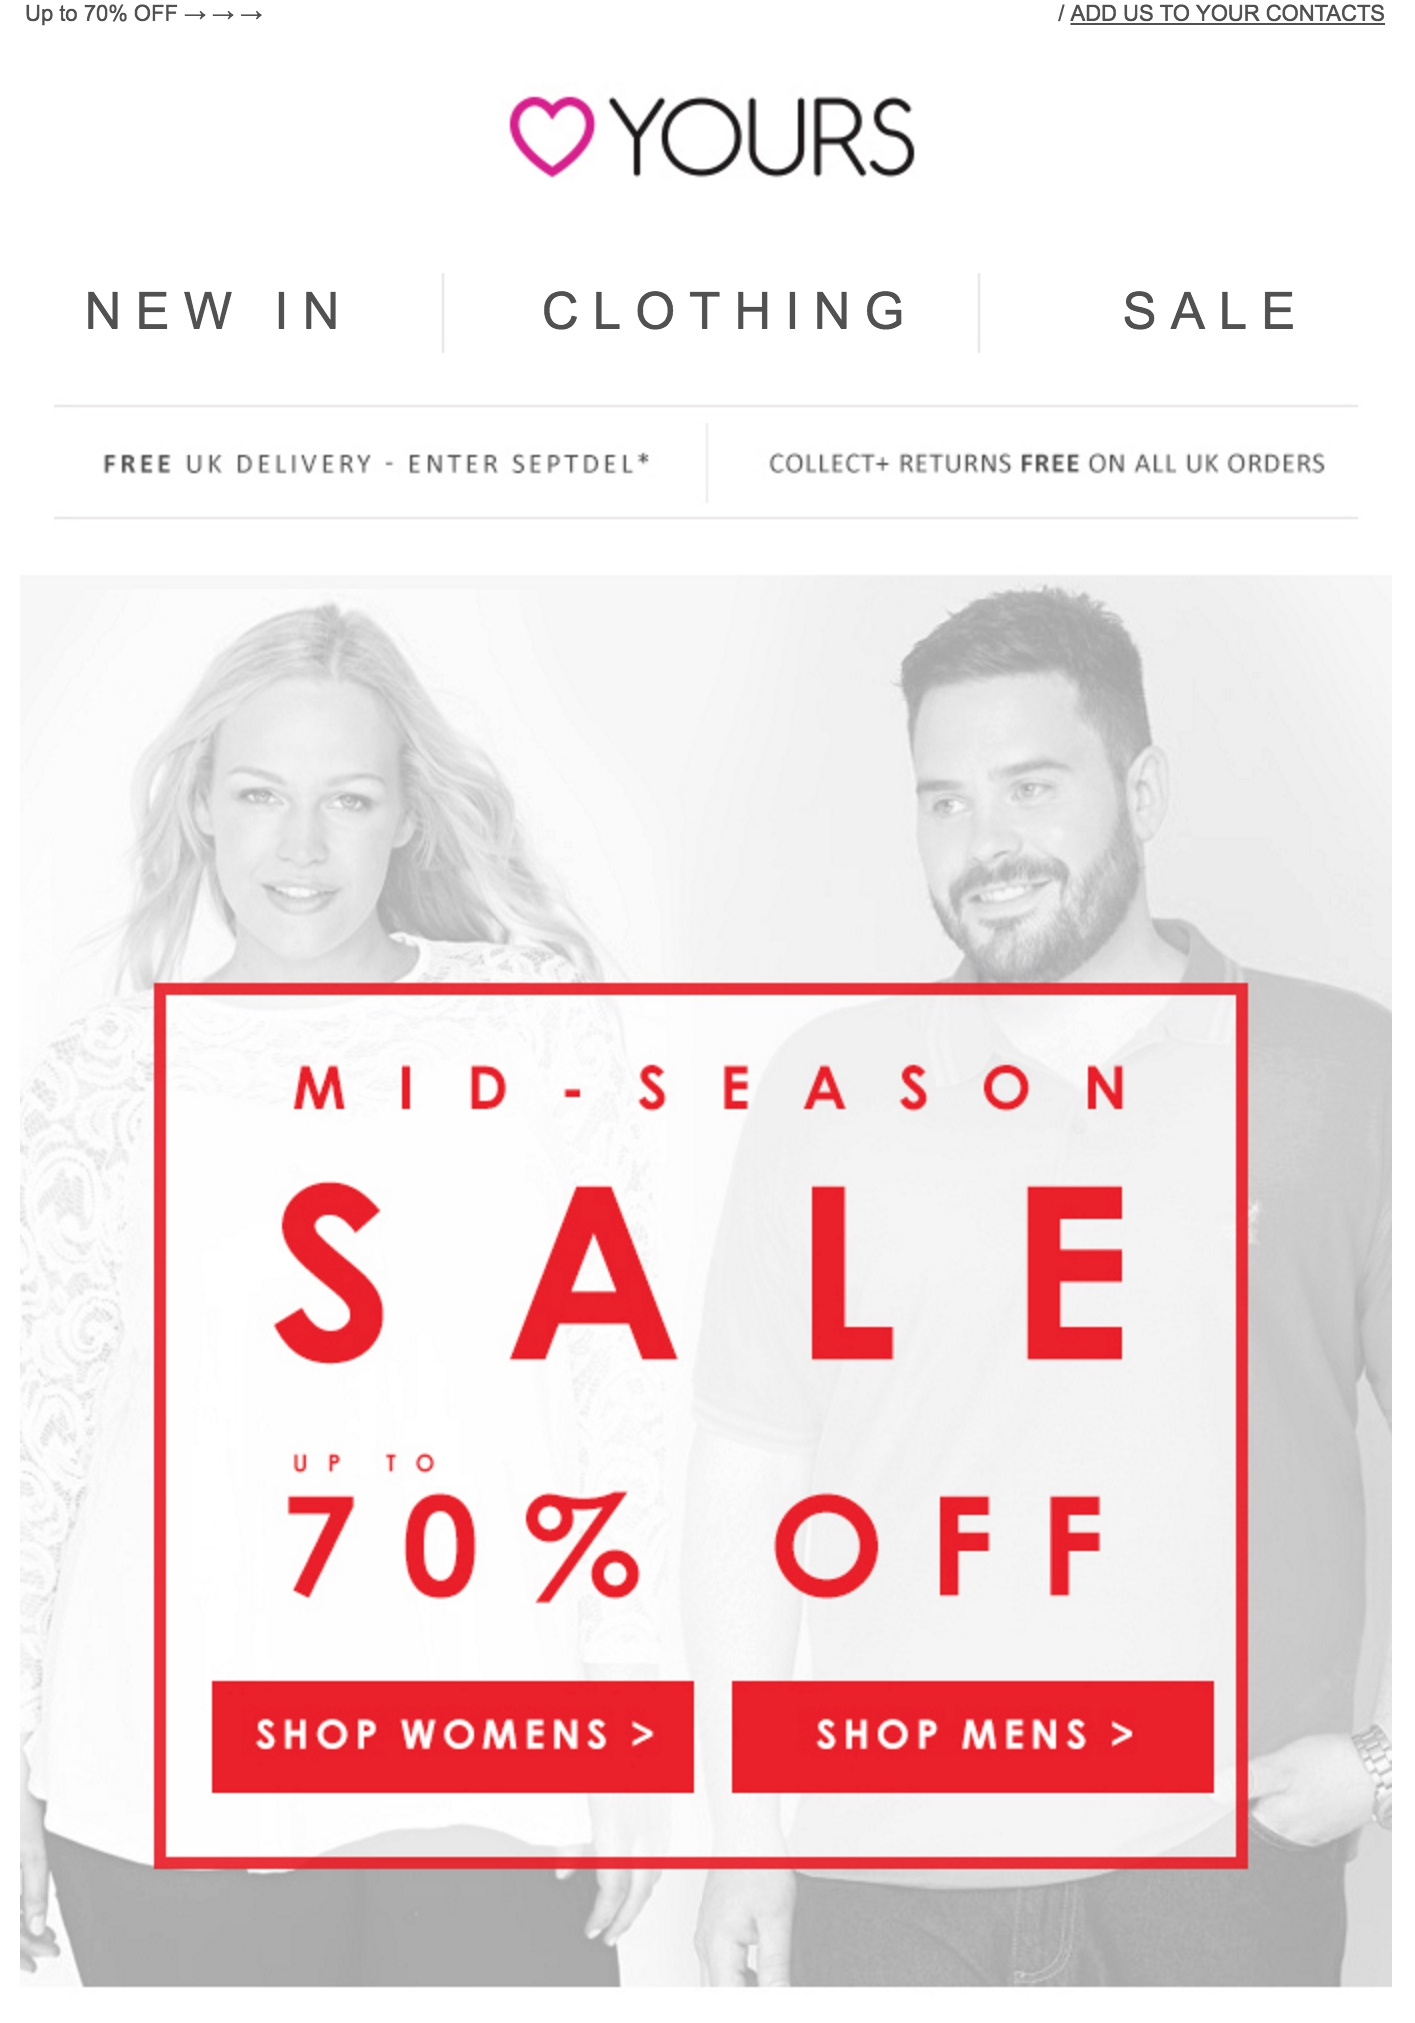 Yours clothing sale emails